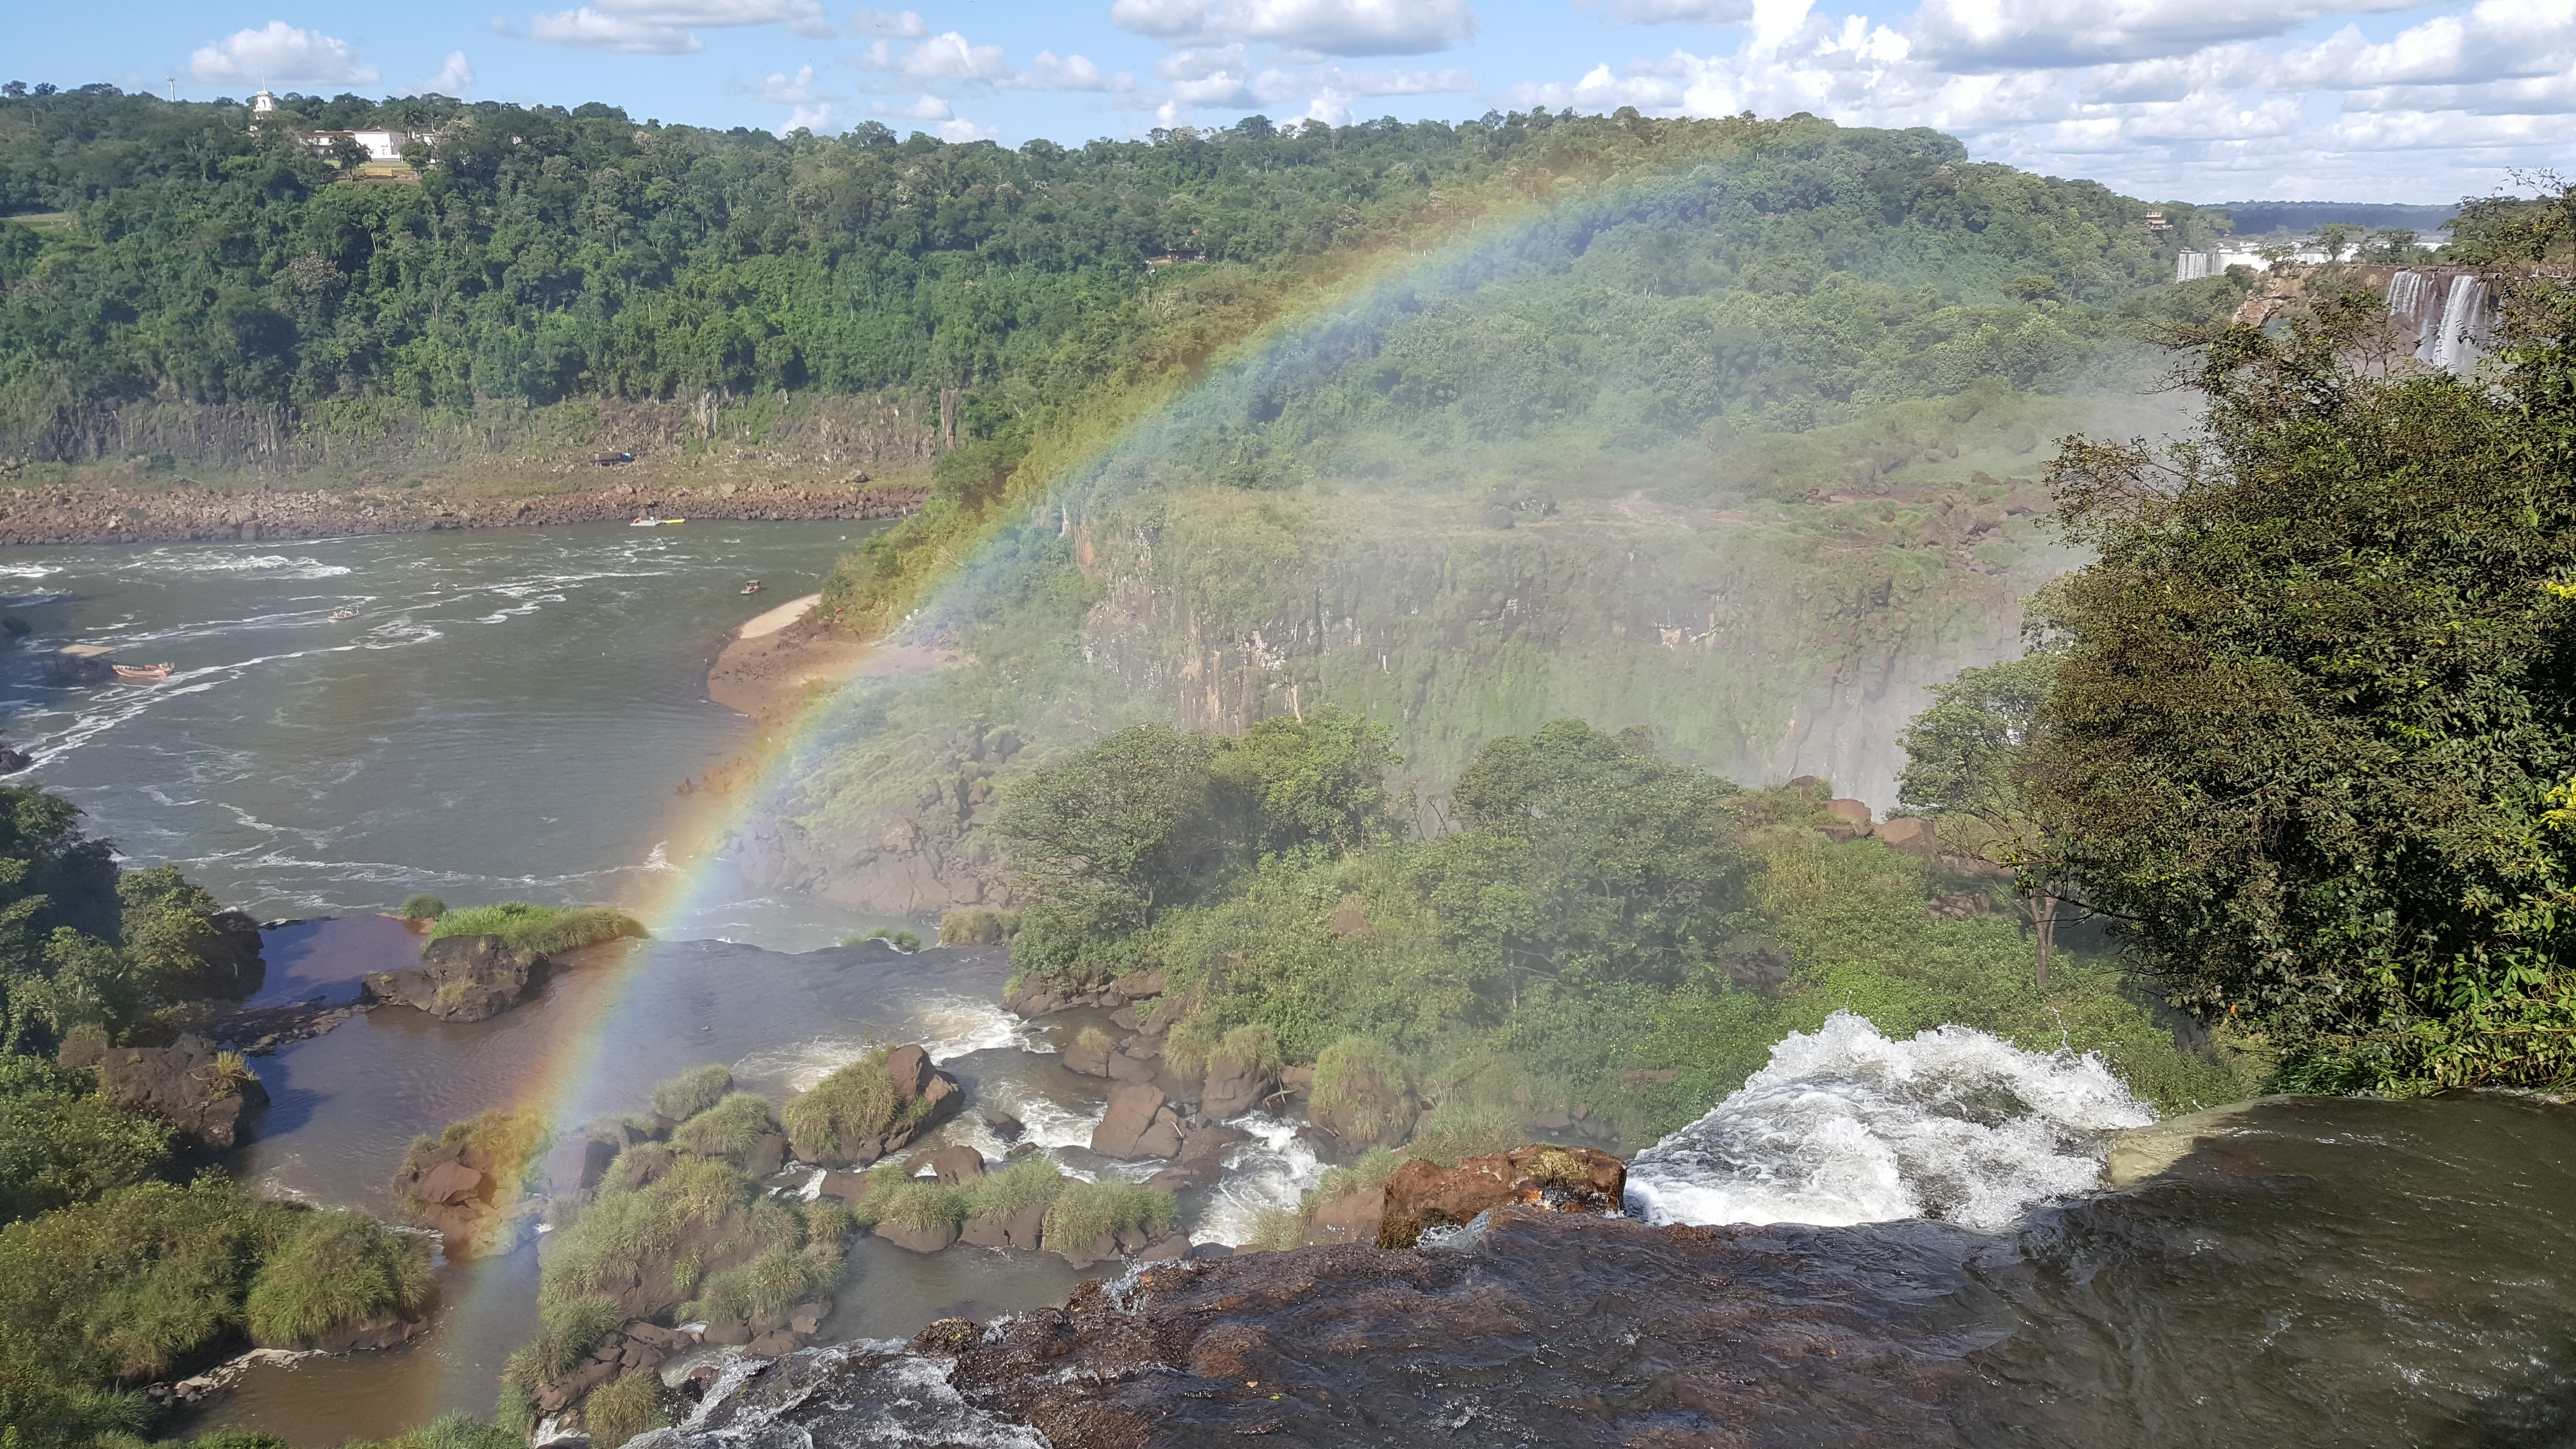 Free download high resolution image - free image free photo free stock image public domain picture -Iguassu waterfalls with rainbow on a sunny day